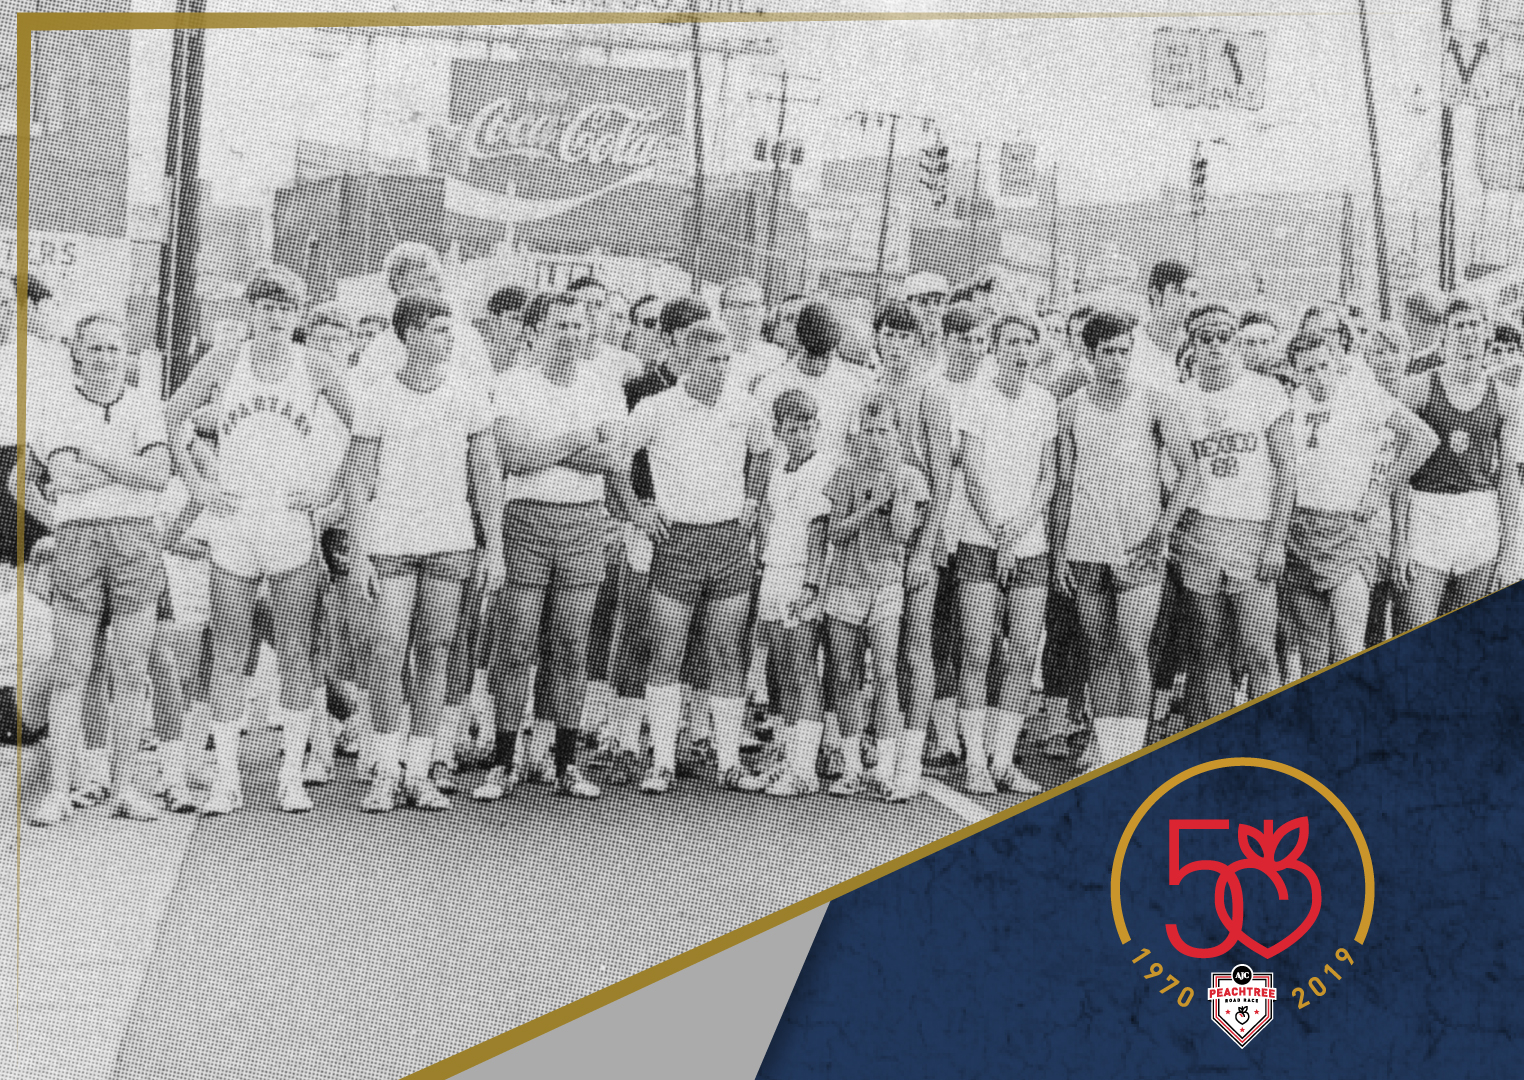 Memories from the Original 110 - By Jay HolderWhat that first Peachtree Road Race was really like.